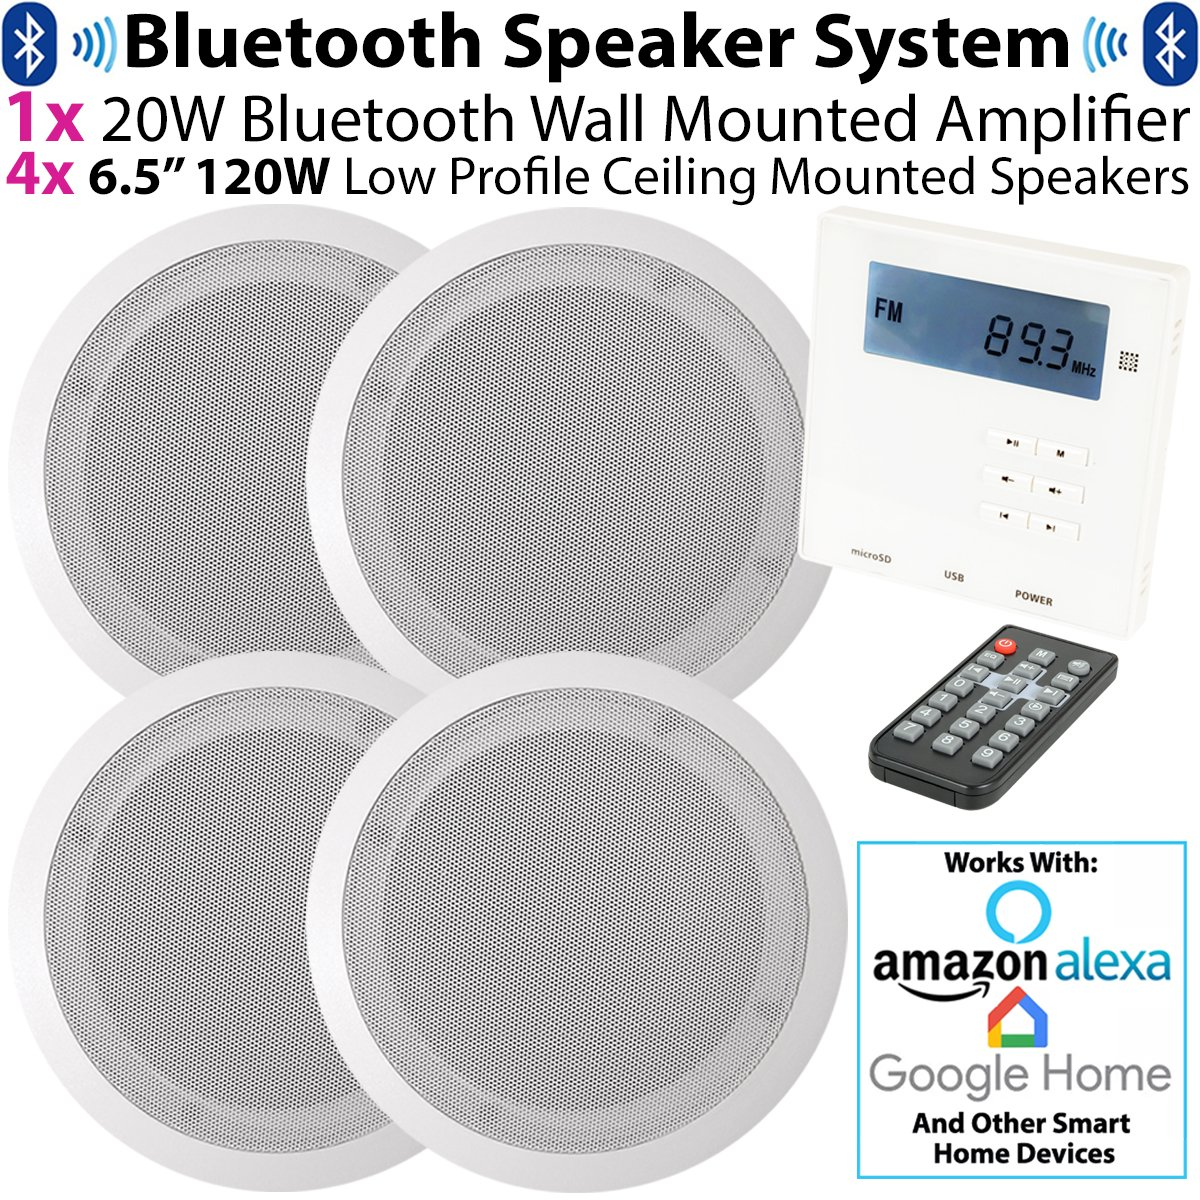 "SMART HOME WALL AMP & 4x CEILING SPEAKER KIT – 4x 6.5"" 120W Low Profile Ceiling Speaker & Mini Wall Mounted Bluetooth Amplifier *WORKS WITH ECHO / ALEXA* - Stereo HiFi Kitchen Accessories Kit – Mini Wireless Amp With FM Receiver - Home Music Audio"